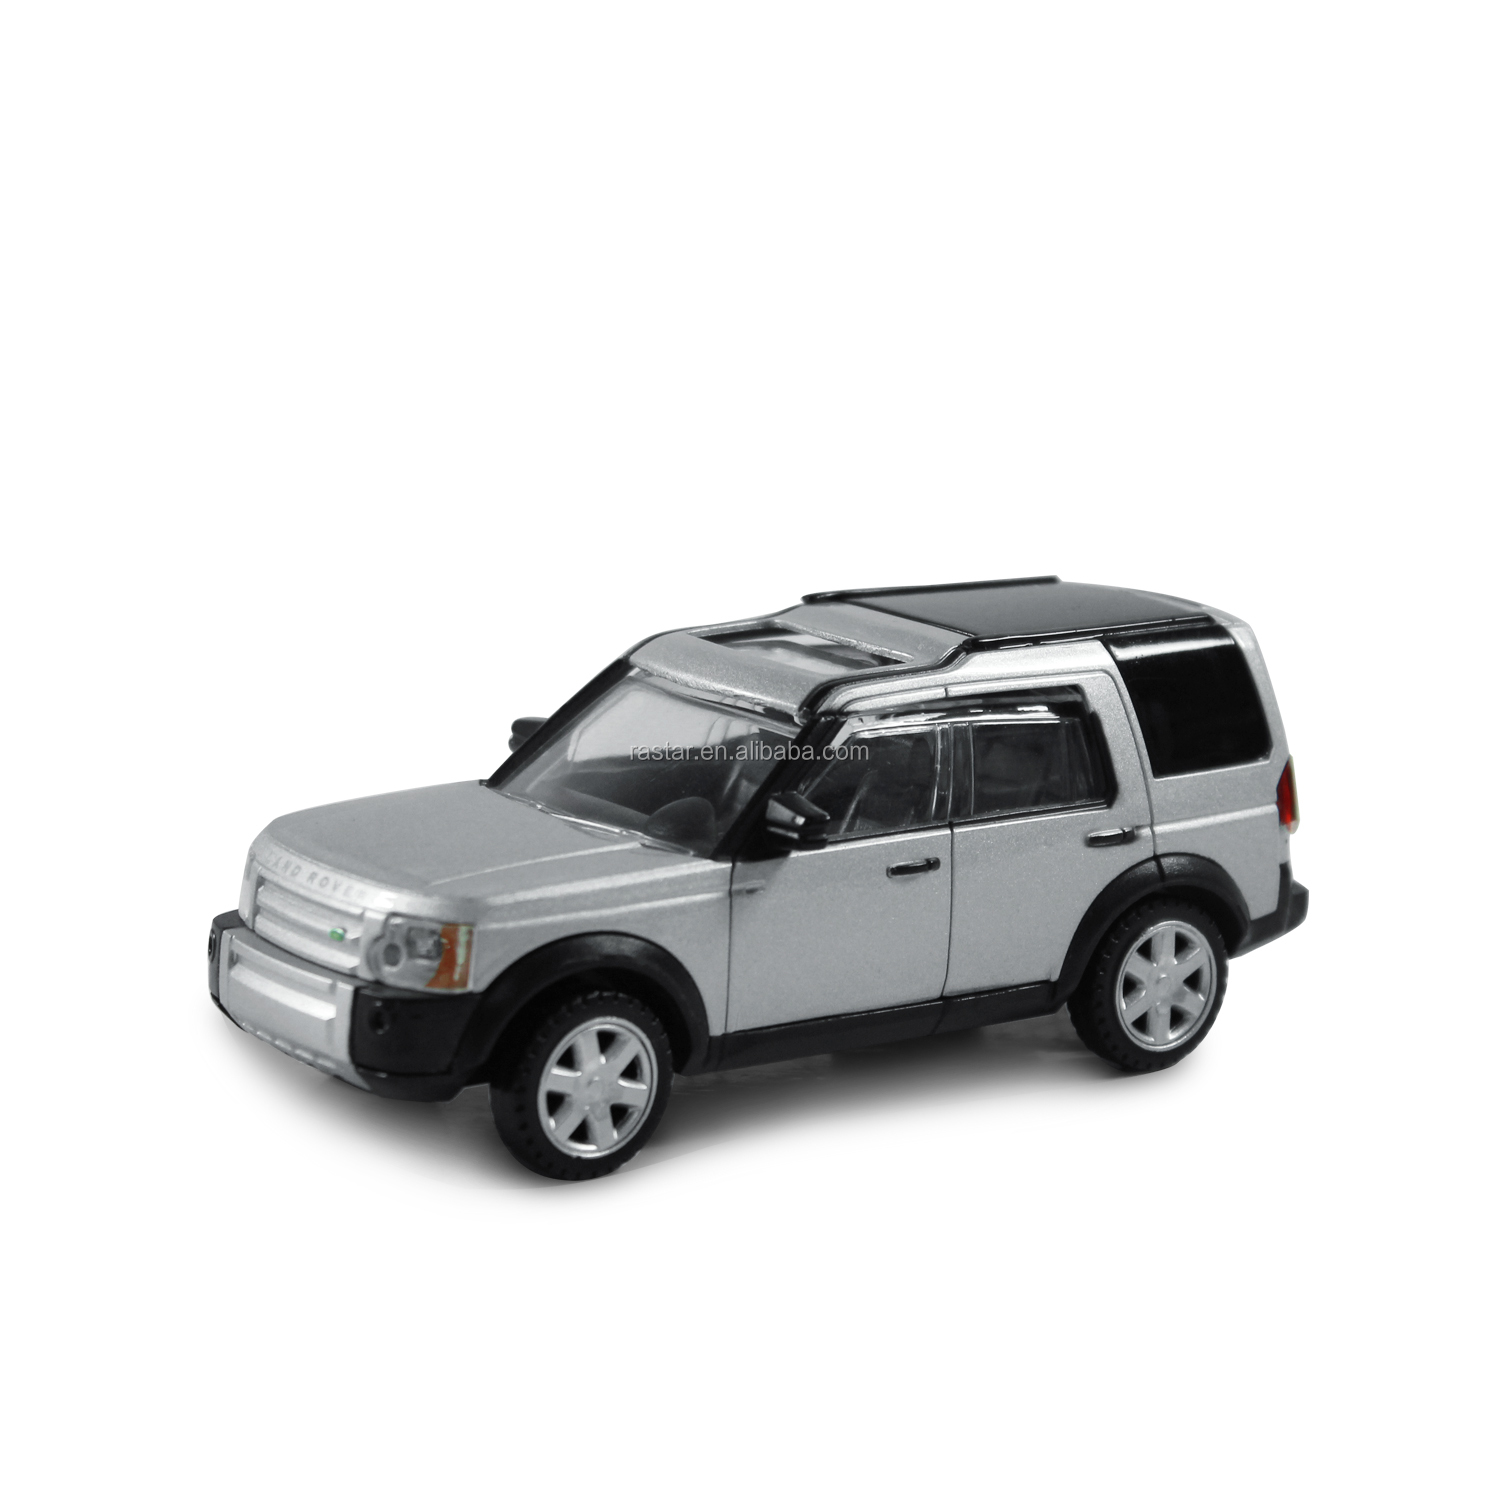 Land Rover non-toxic zinc alloy die cast metal car model toys